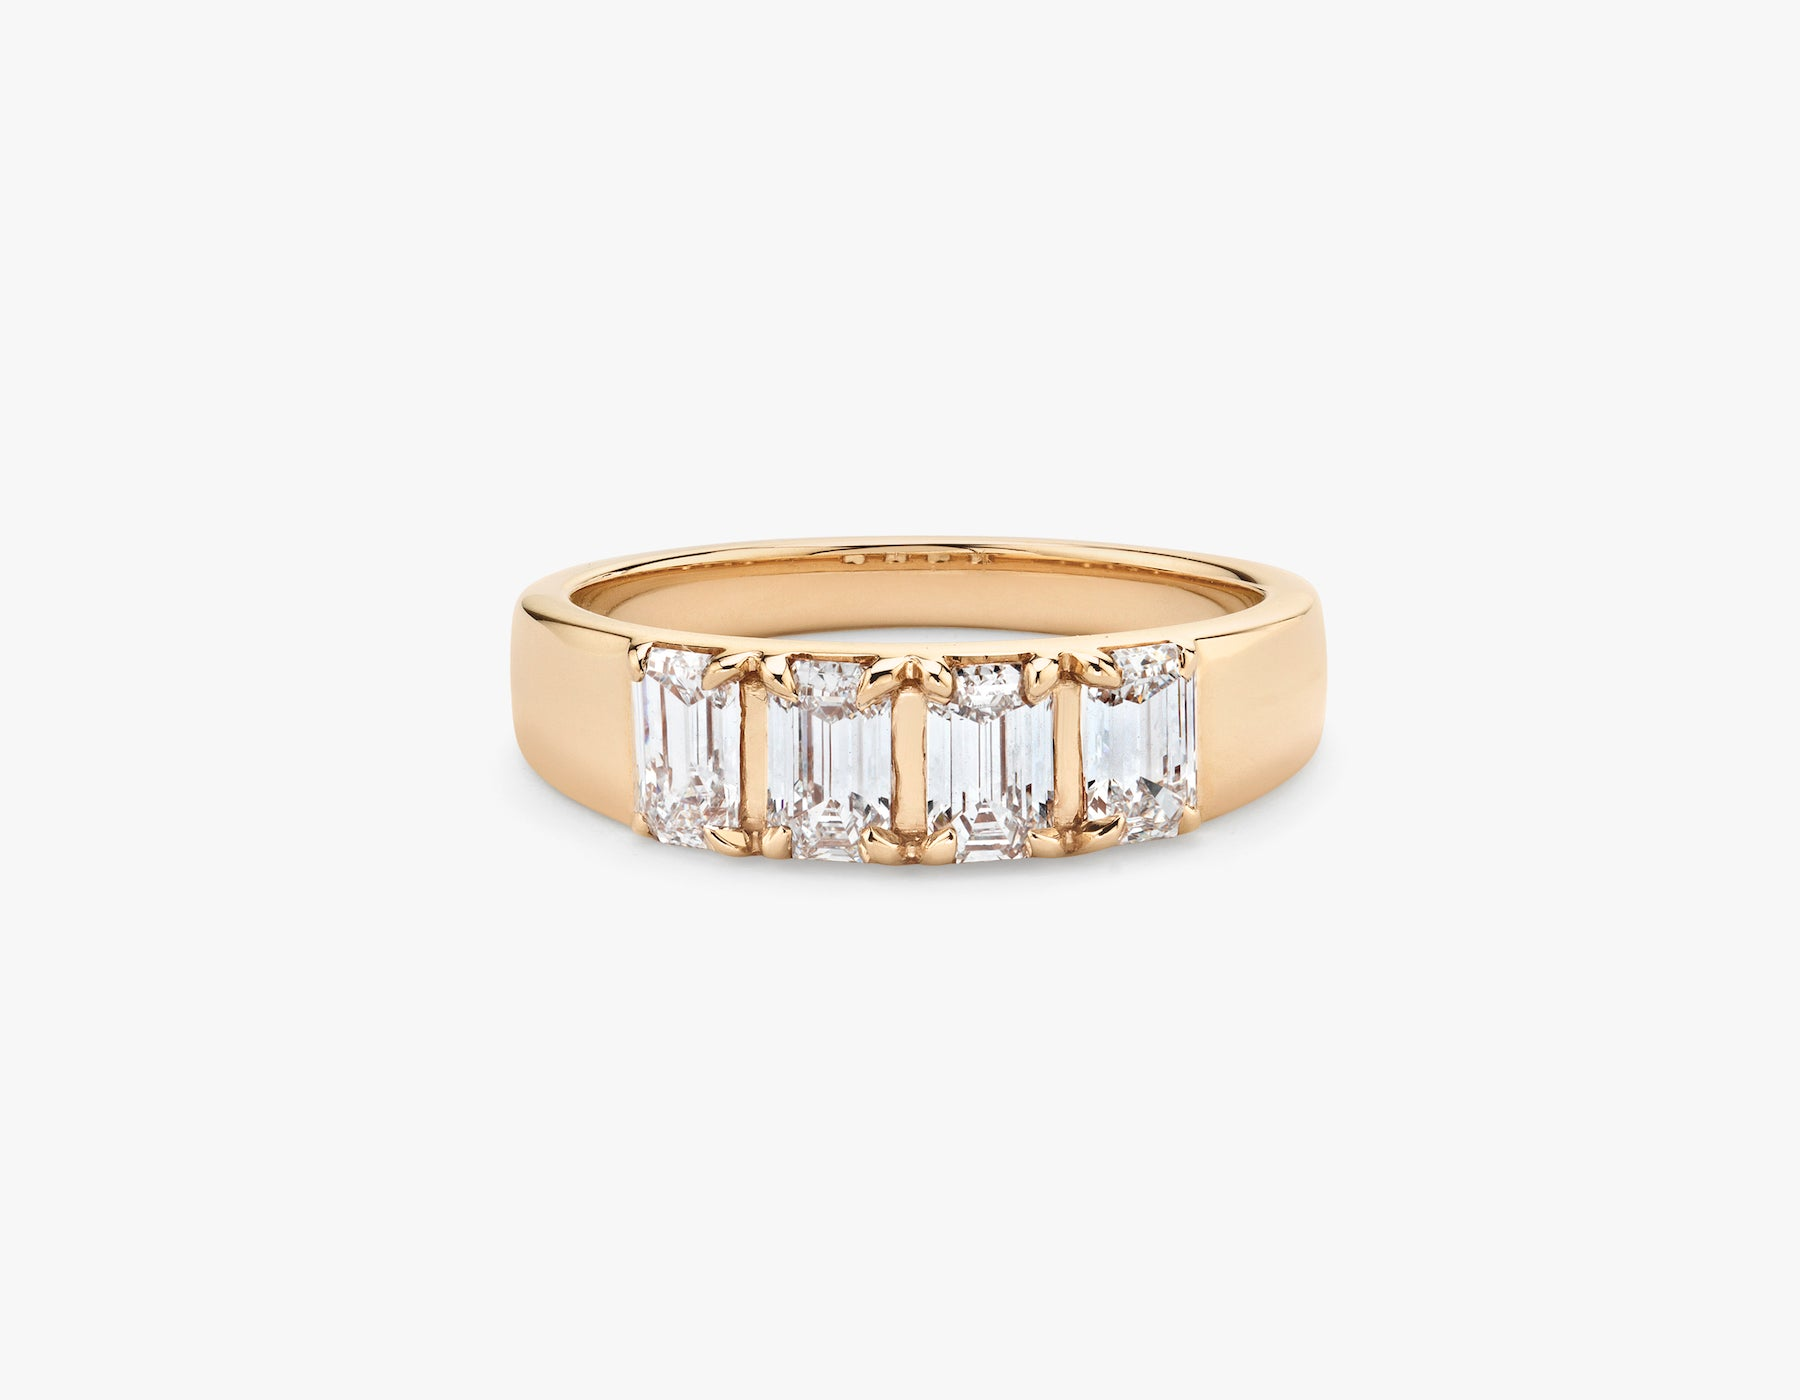 Vrai simple minimalist Emerald Diamond Tetrad Band .25ct Emerald Diamond Ring, 14K Rose Gold